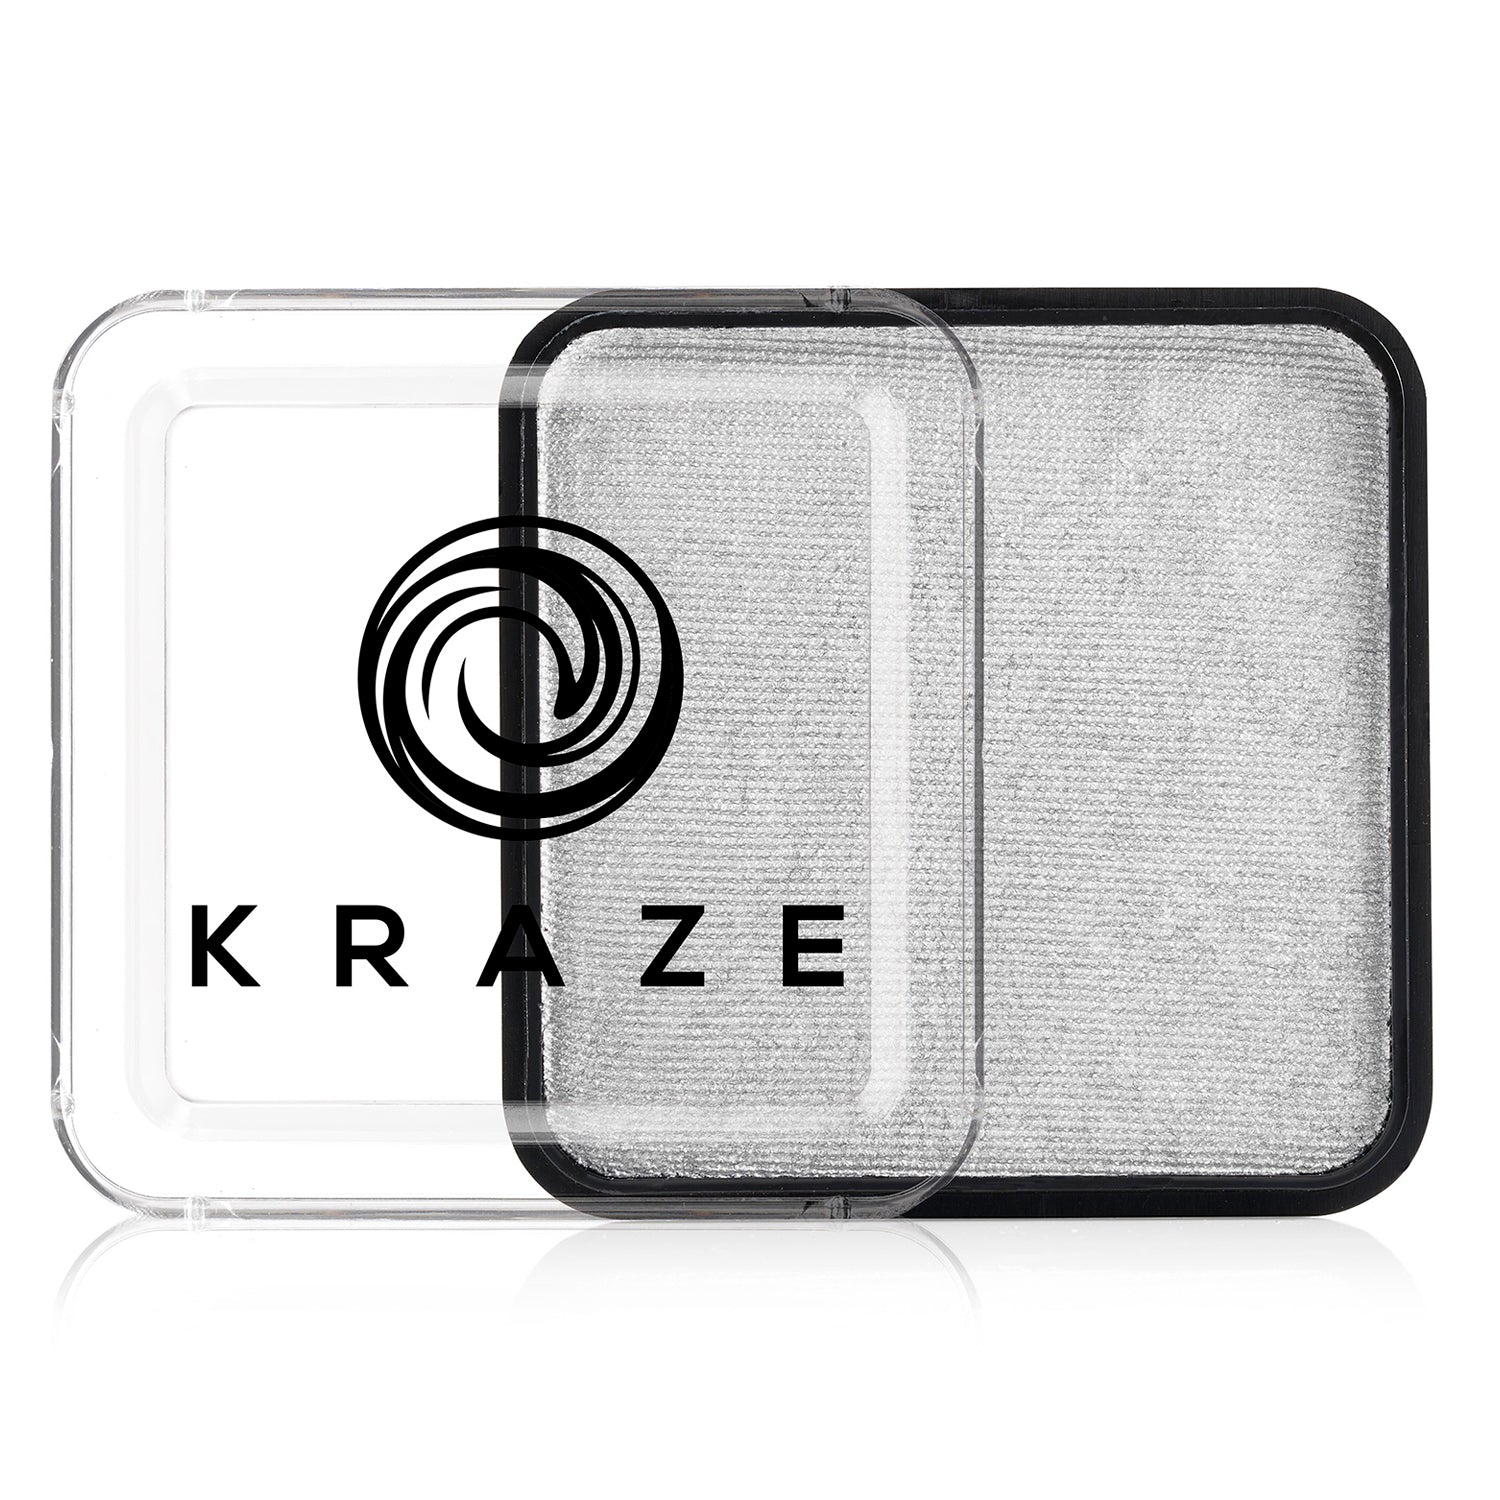 Kraze FX Face Paint - 25 gm - Metallic Silver